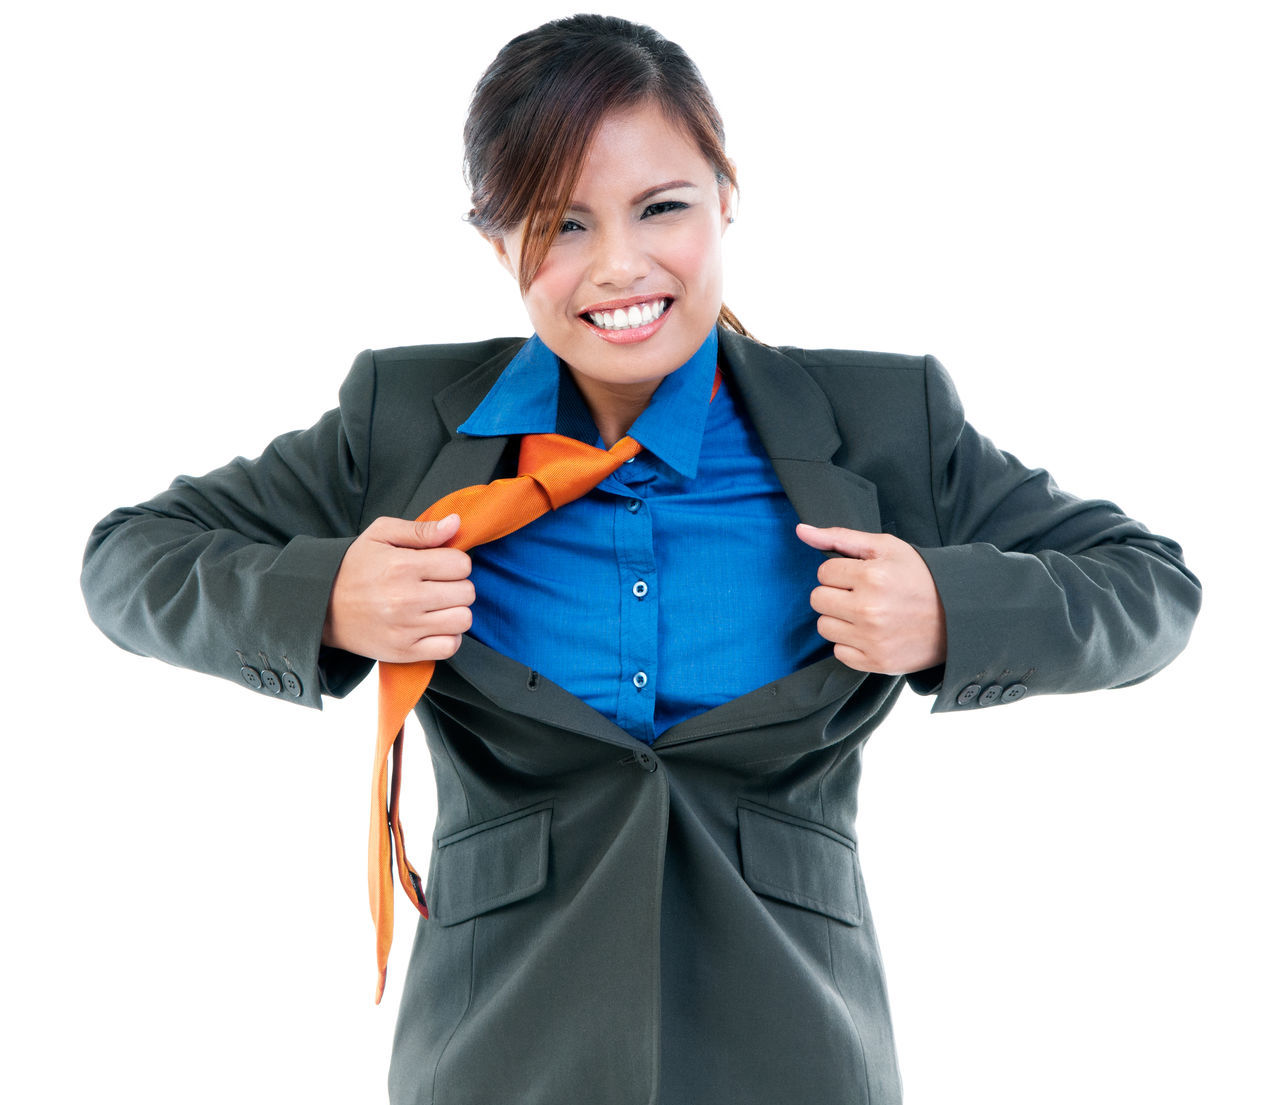 Portrait of a young businesswoman pulling her suit with her hands like a superhero Asian  Brave Businesswear Concept Confident  Corporate Courageous Female Front View Girl Power Happy Heroine Hispanic One Person People Power Powerful Woman Pulling Suit Apart Smile Strong Superhero Pose Waist Up White Background Young Adult Young Woman